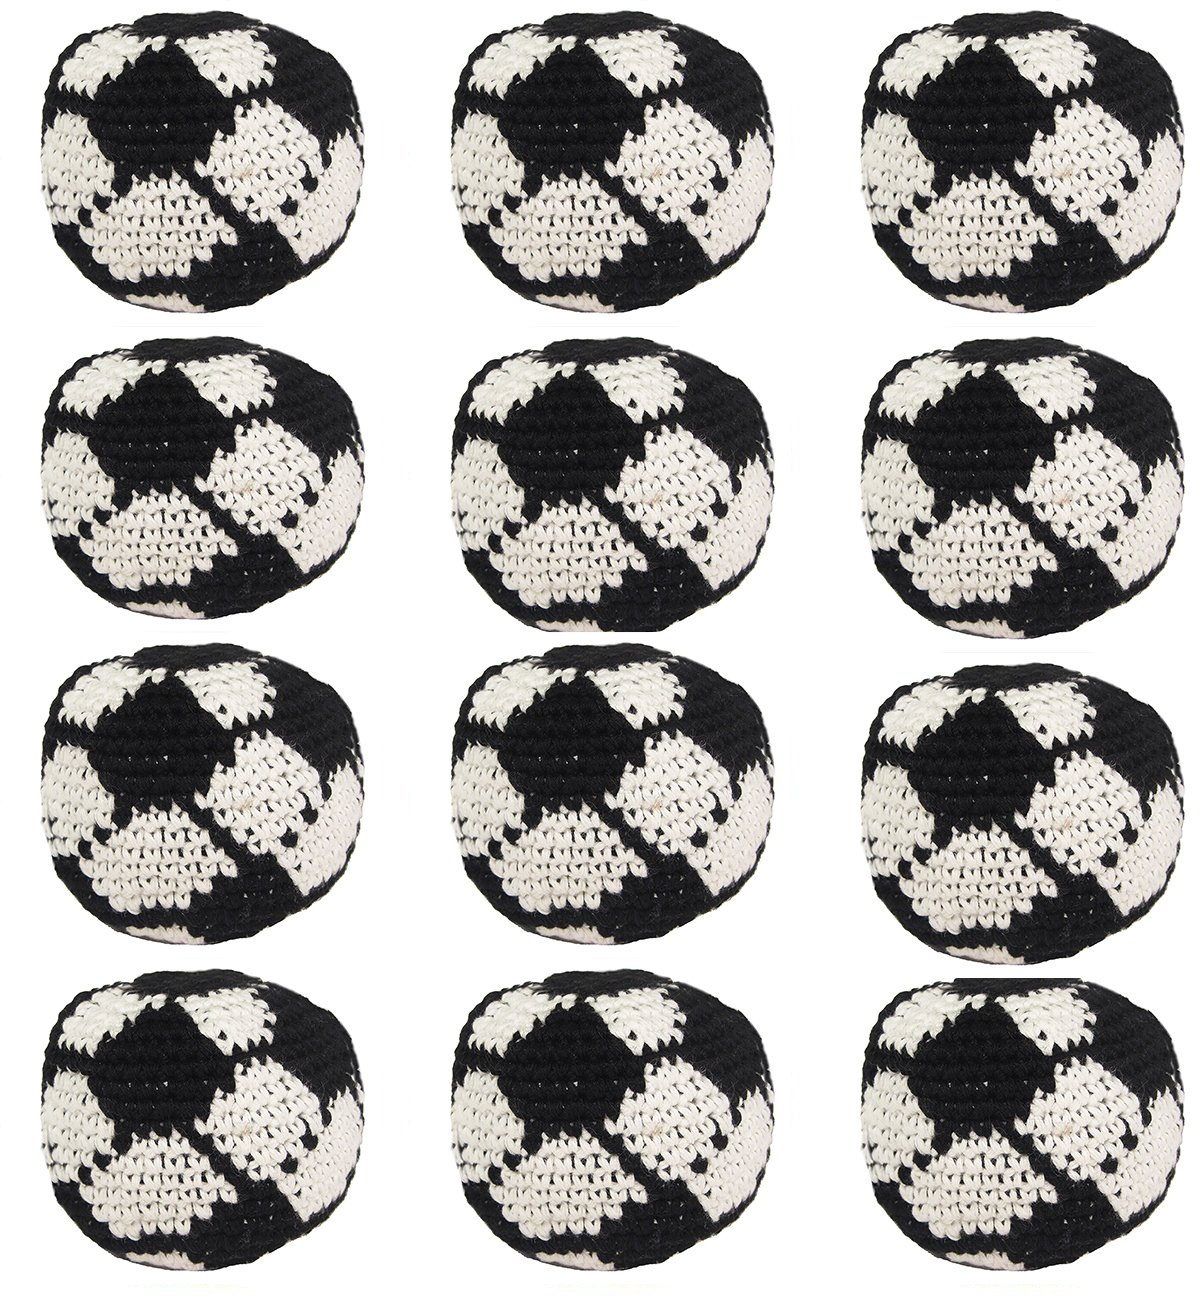 Set of 12 Hacky Sacks - Soccer Ball by Turtle Island Imports